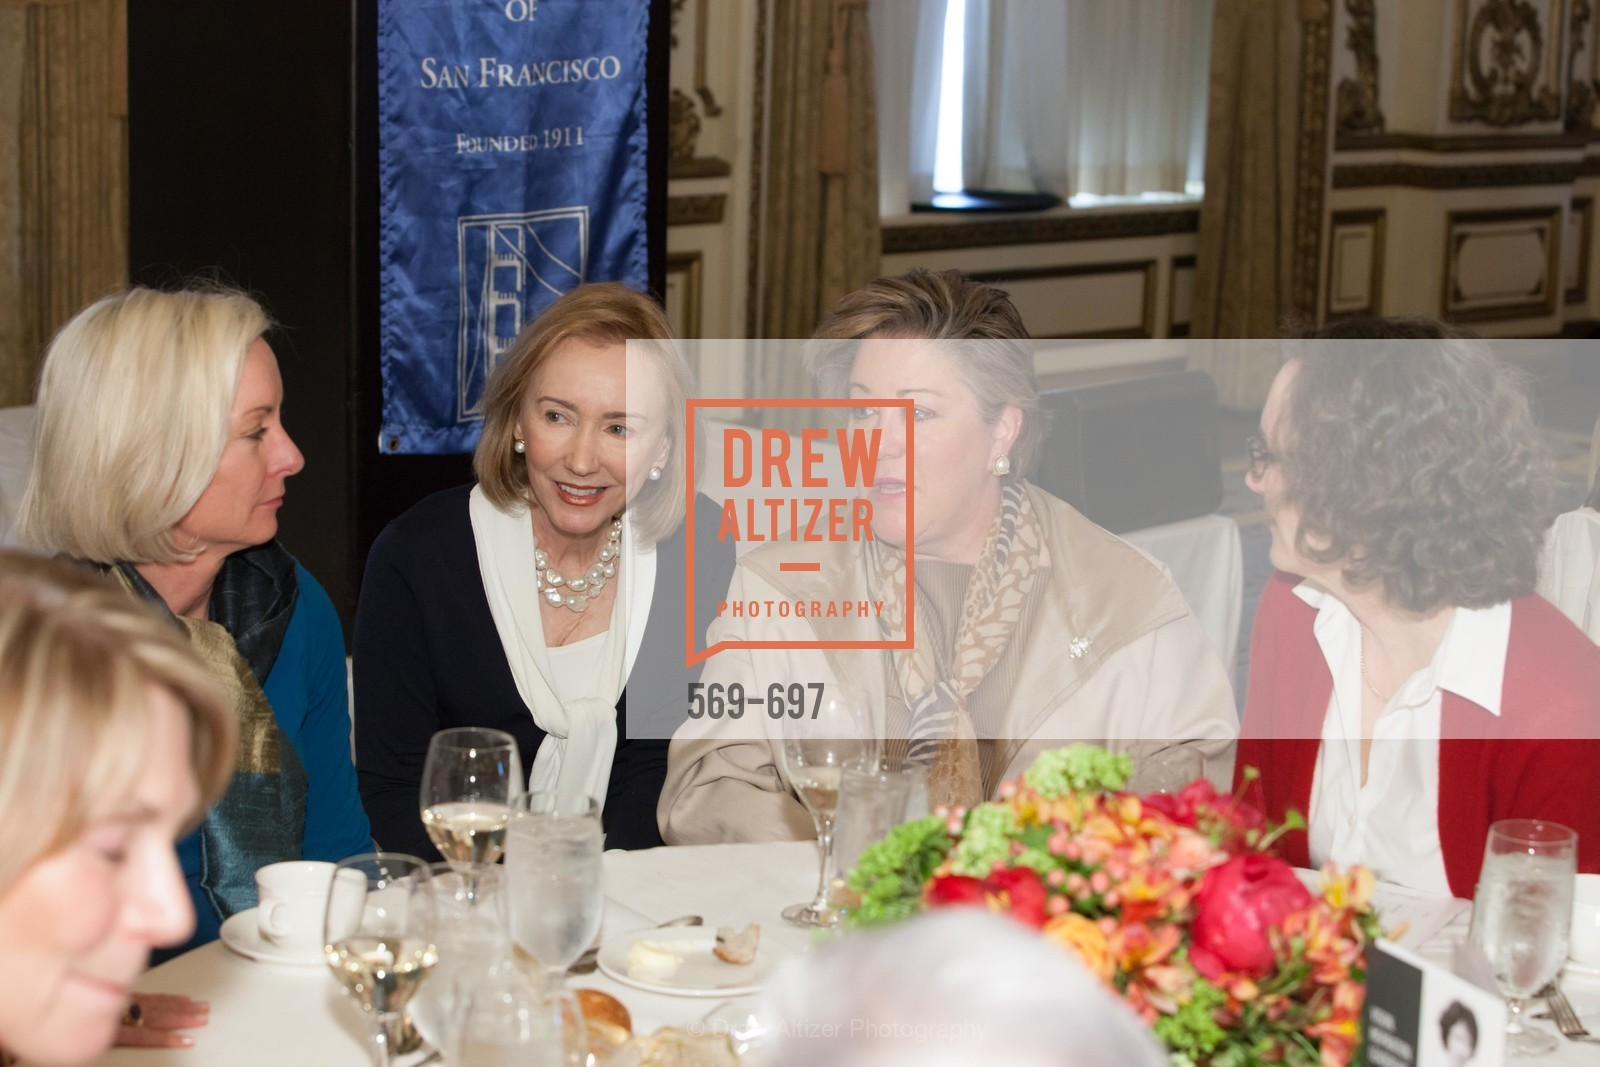 Janet Higgins, Trish Otstott, Susan Gearey, JUNIOR LEAGUE OF SAN FRANCISCO's WATCH Luncheon, US, May 5th, 2015,Drew Altizer, Drew Altizer Photography, full-service agency, private events, San Francisco photographer, photographer california